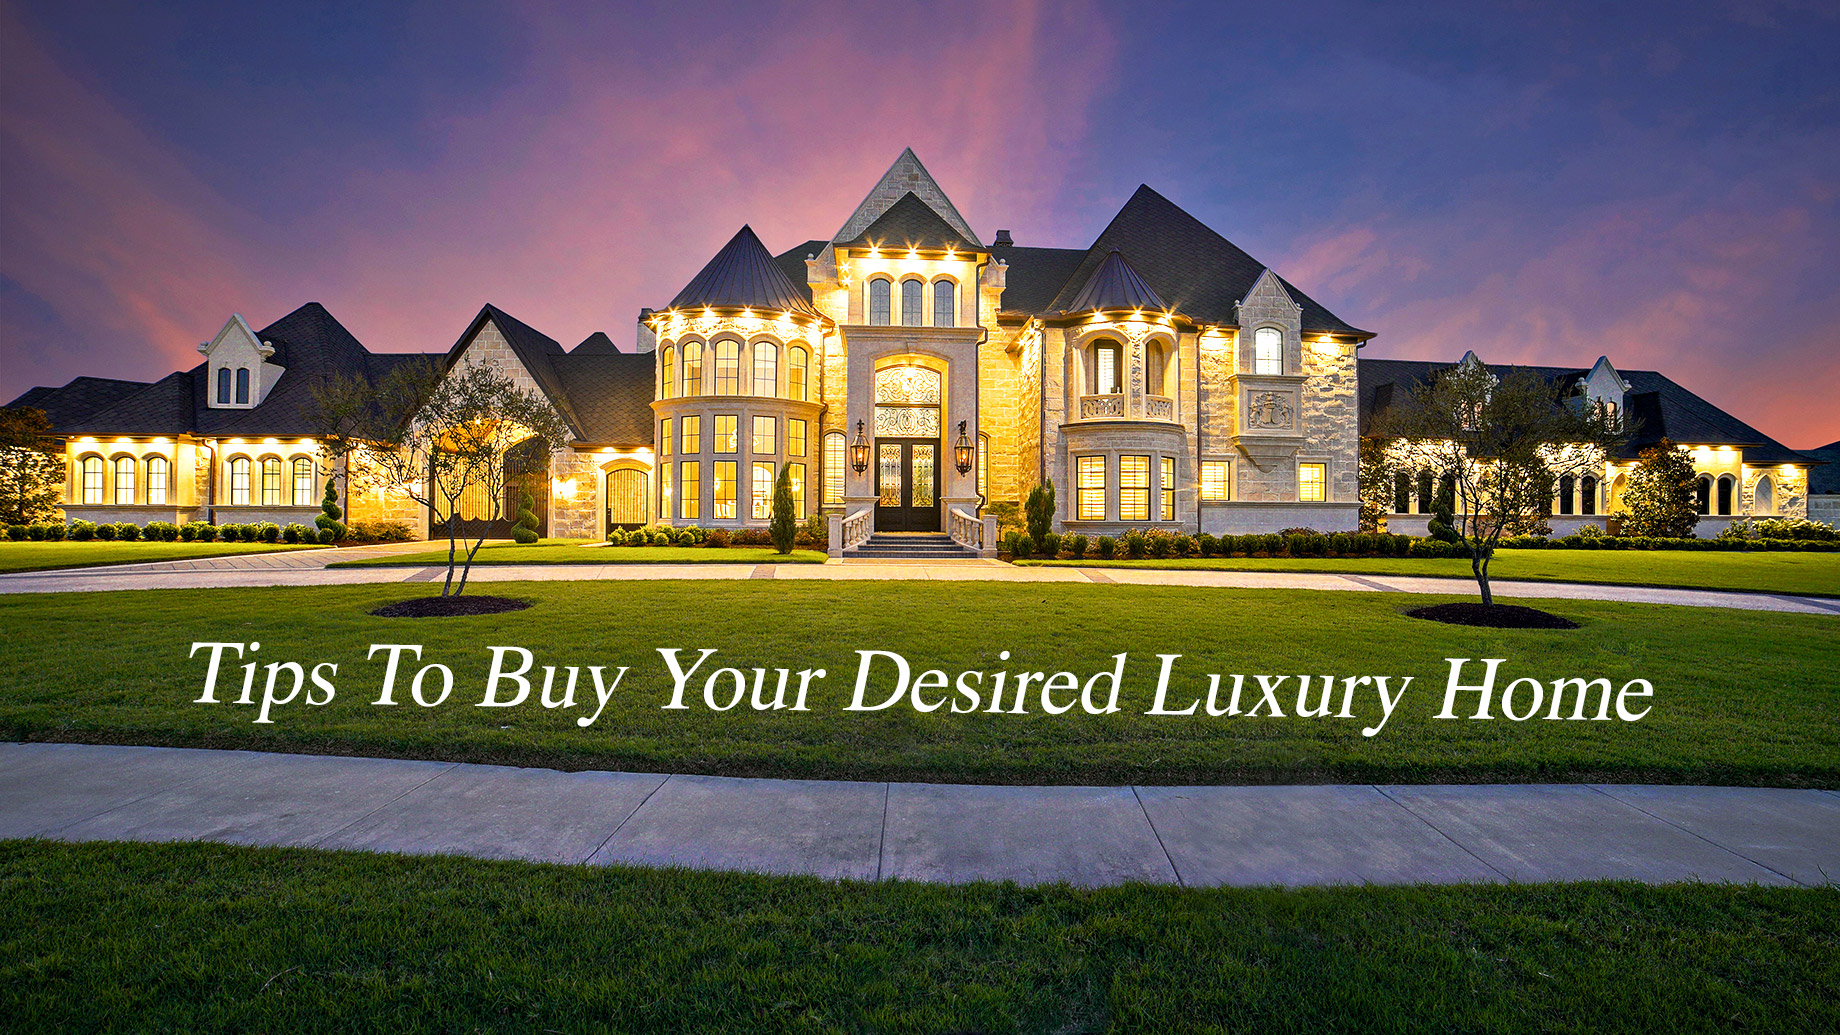 Tips To Buy Your Desired Luxury Home